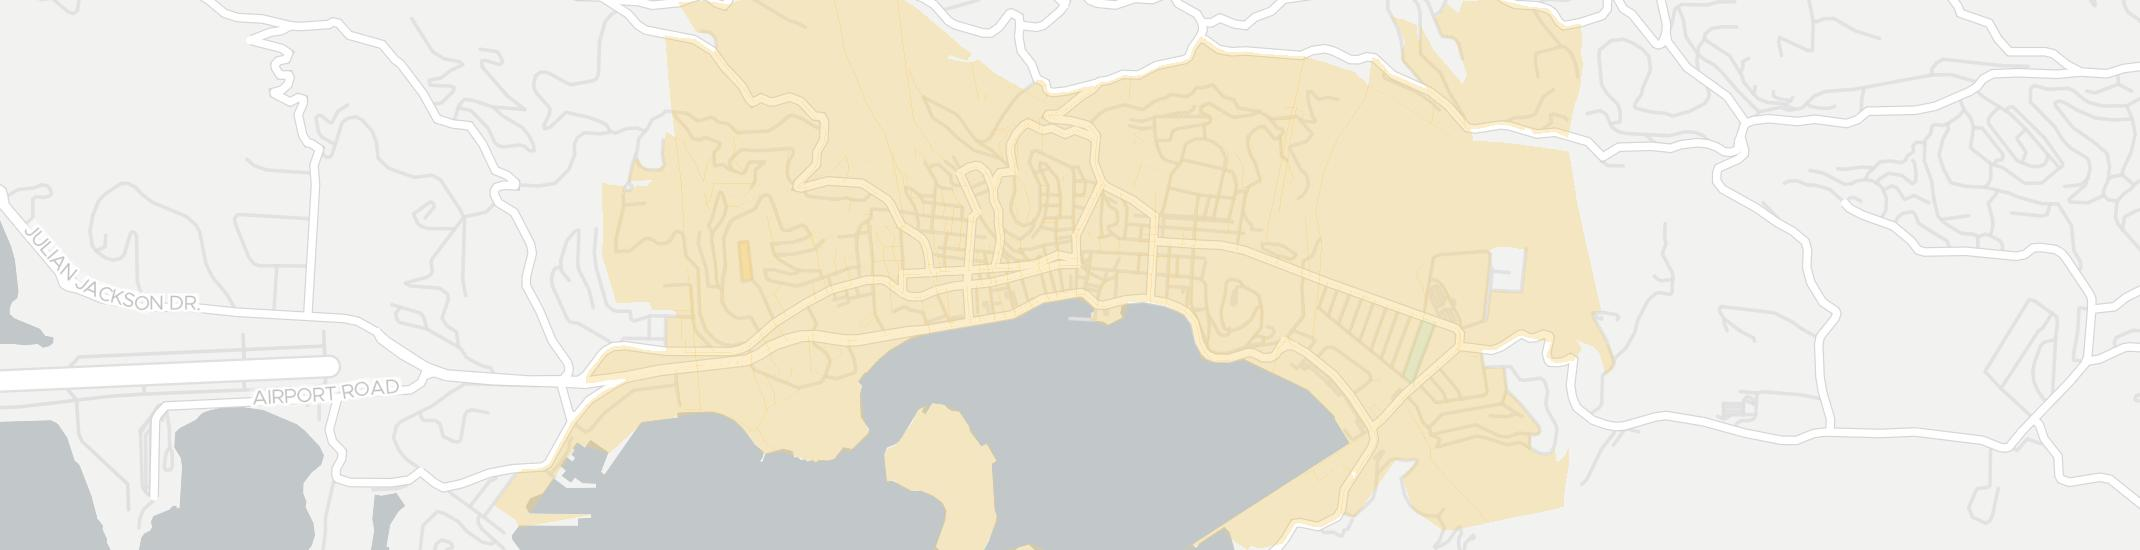 Charlotte Amalie Internet Competition Map. Click for interactive map.